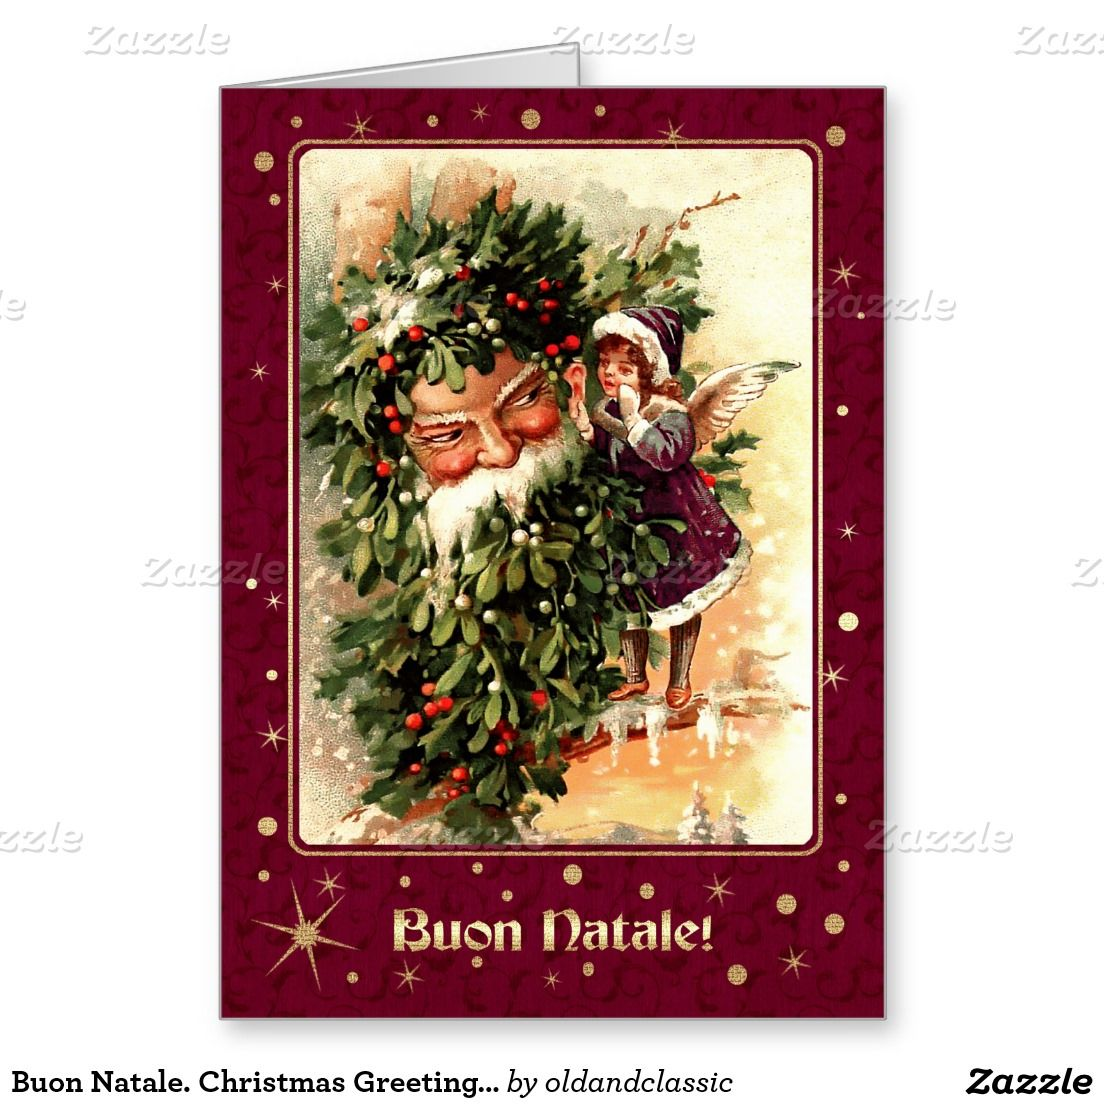 Buon Natale Christmas Greeting Card In Italian Pinterest